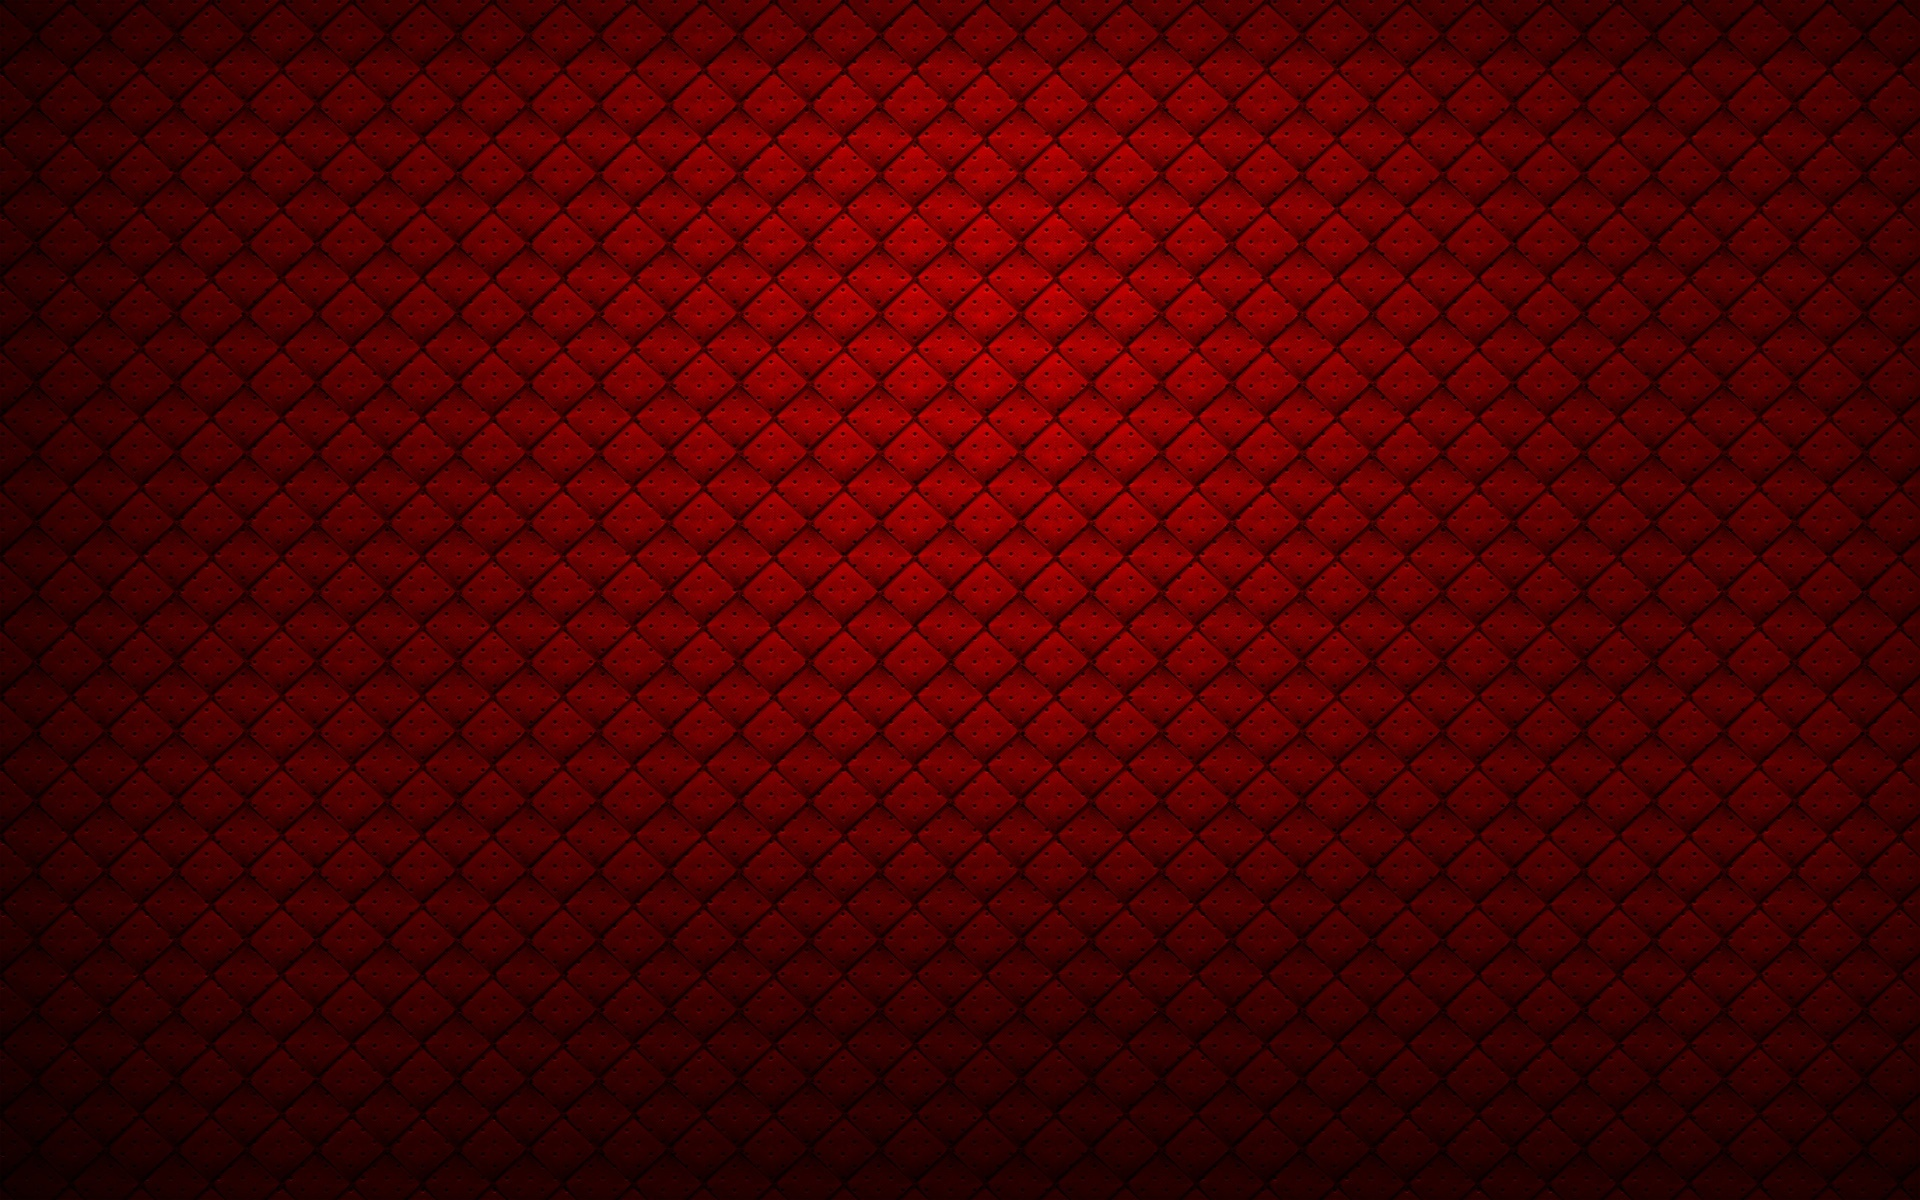 Red and black wallpaper for walls 1 hd wallpaper 1 wall wallpaper